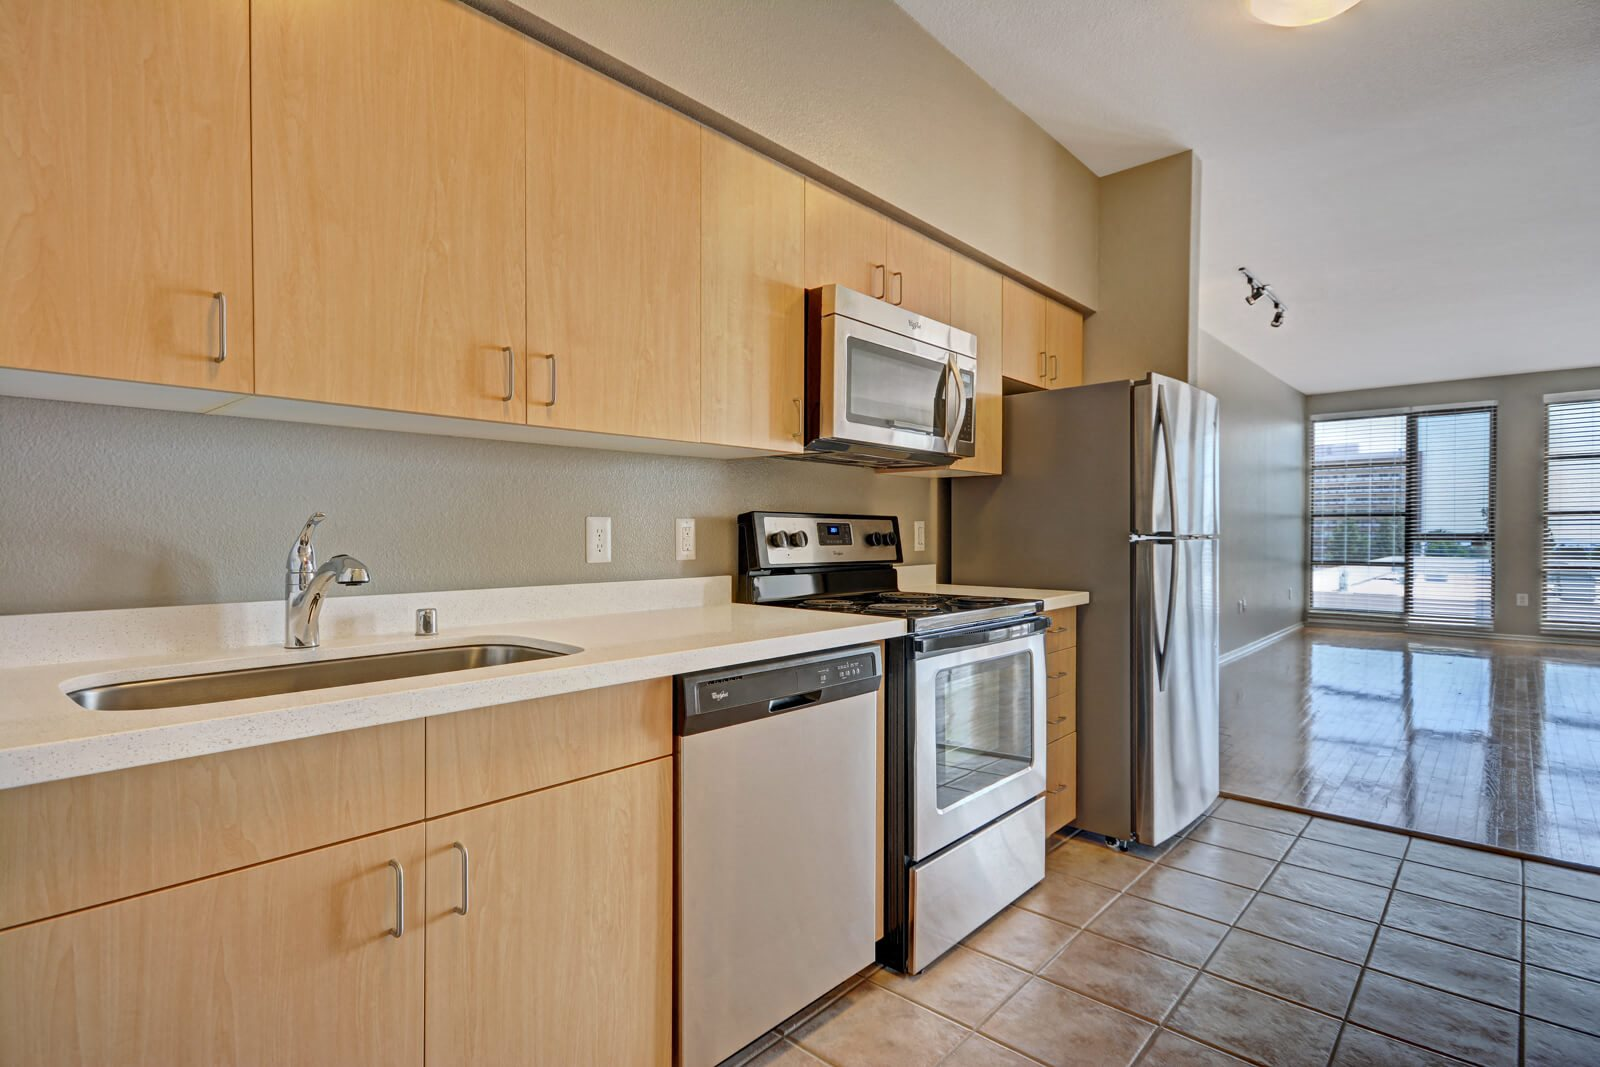 Modern Kitchens with Stainless Steel Appliances at Terraces at Paseo Colorado, 375 E. Green Street, CA